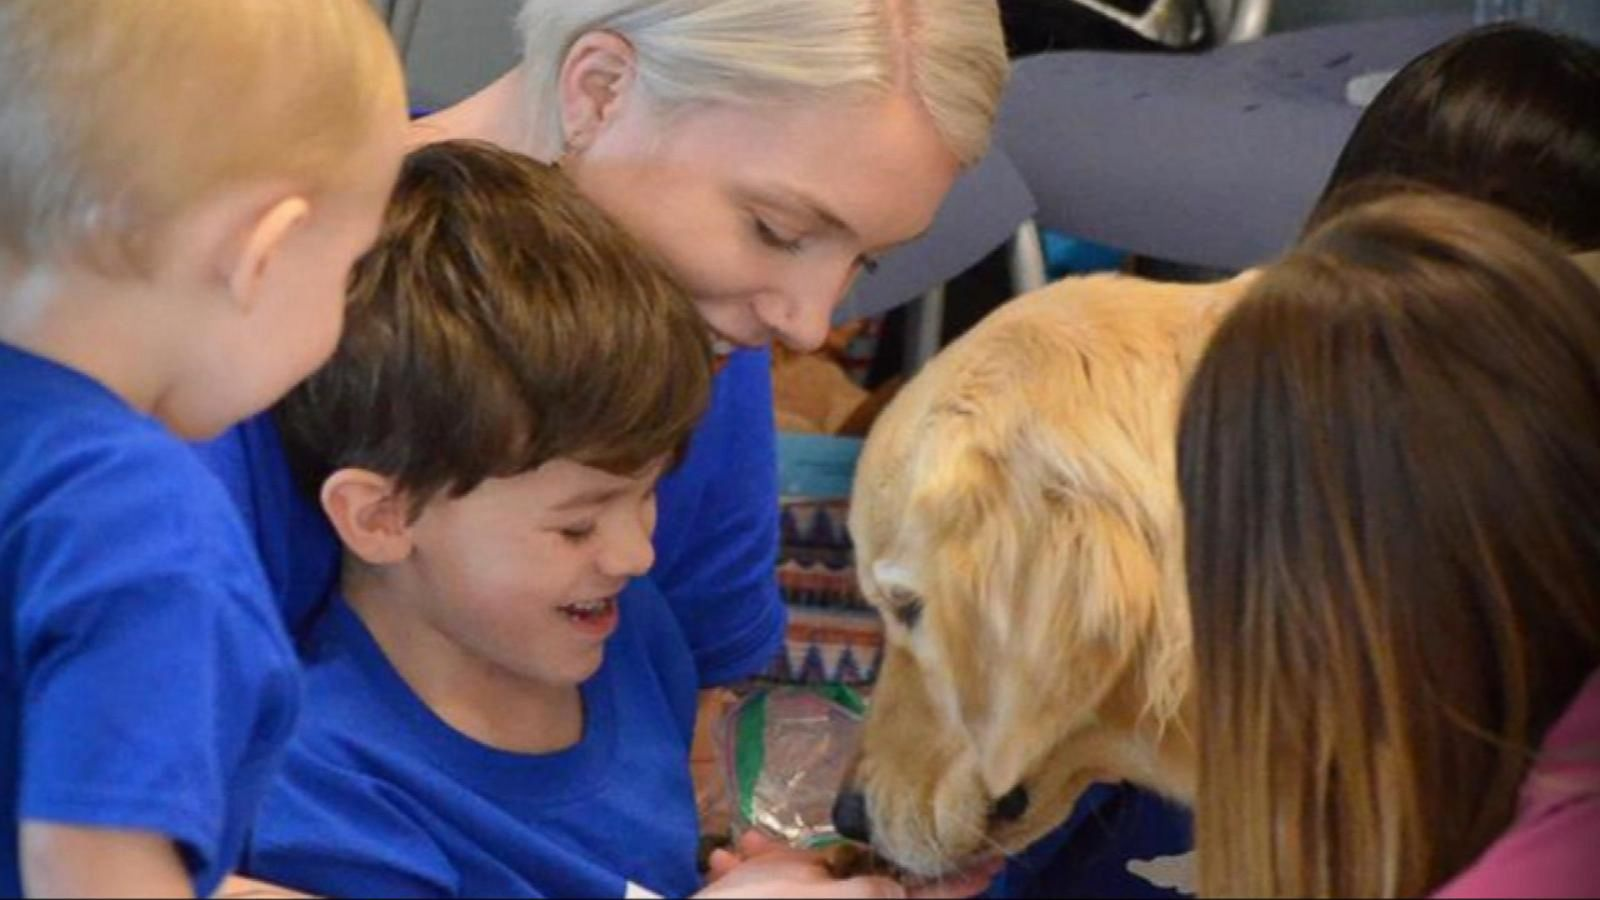 VIDEO: A Mom Cries Tears of Joy When Her Child Meets His Special Pet